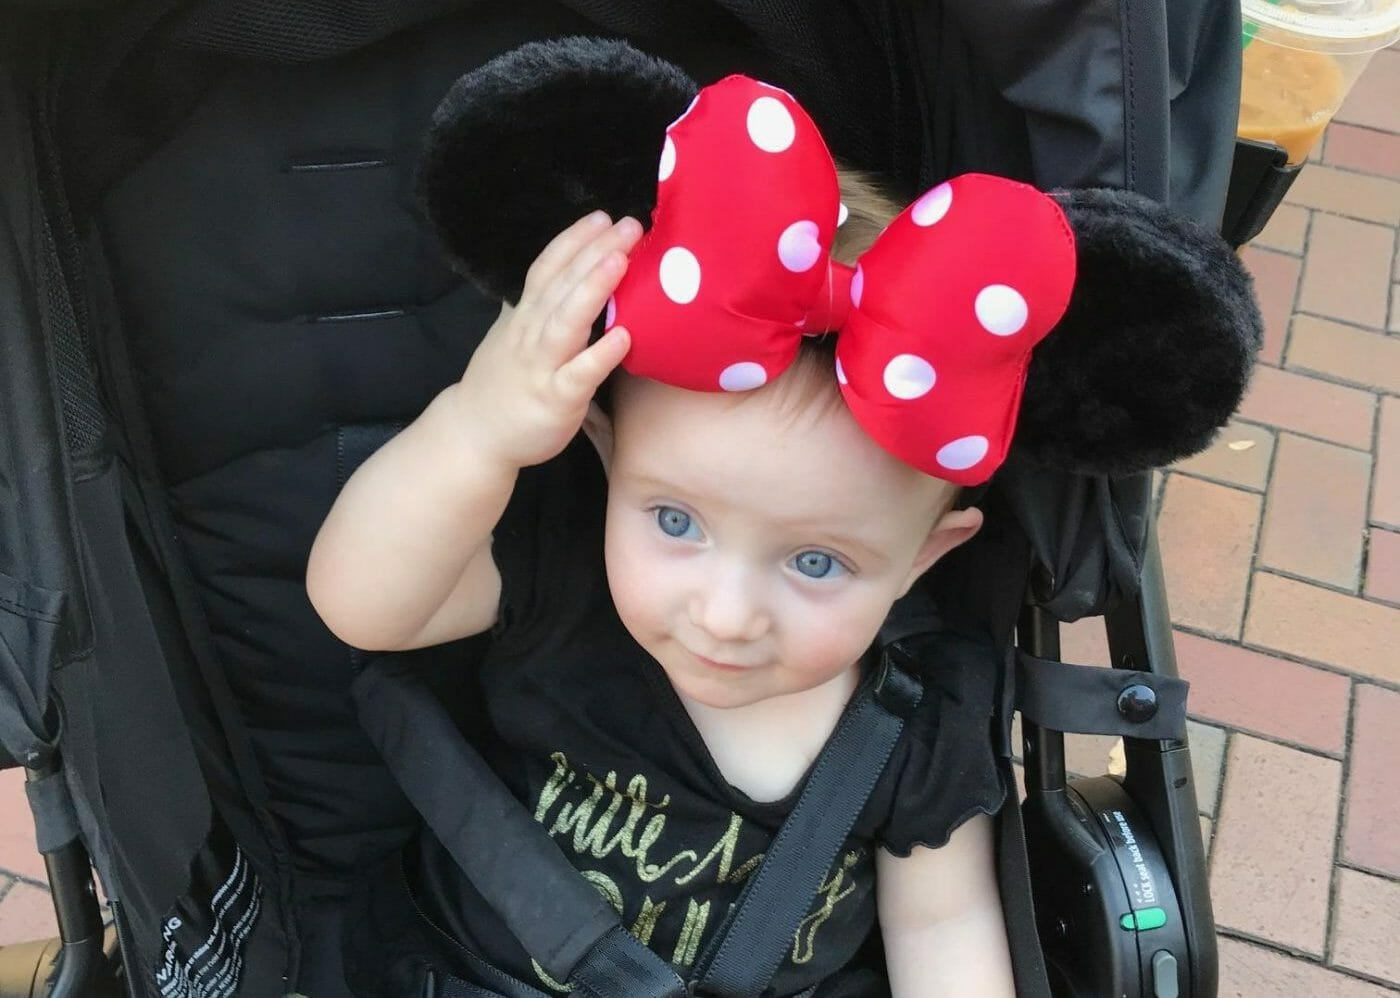 A baby sits in an Ergobaby stroller at Disneyland